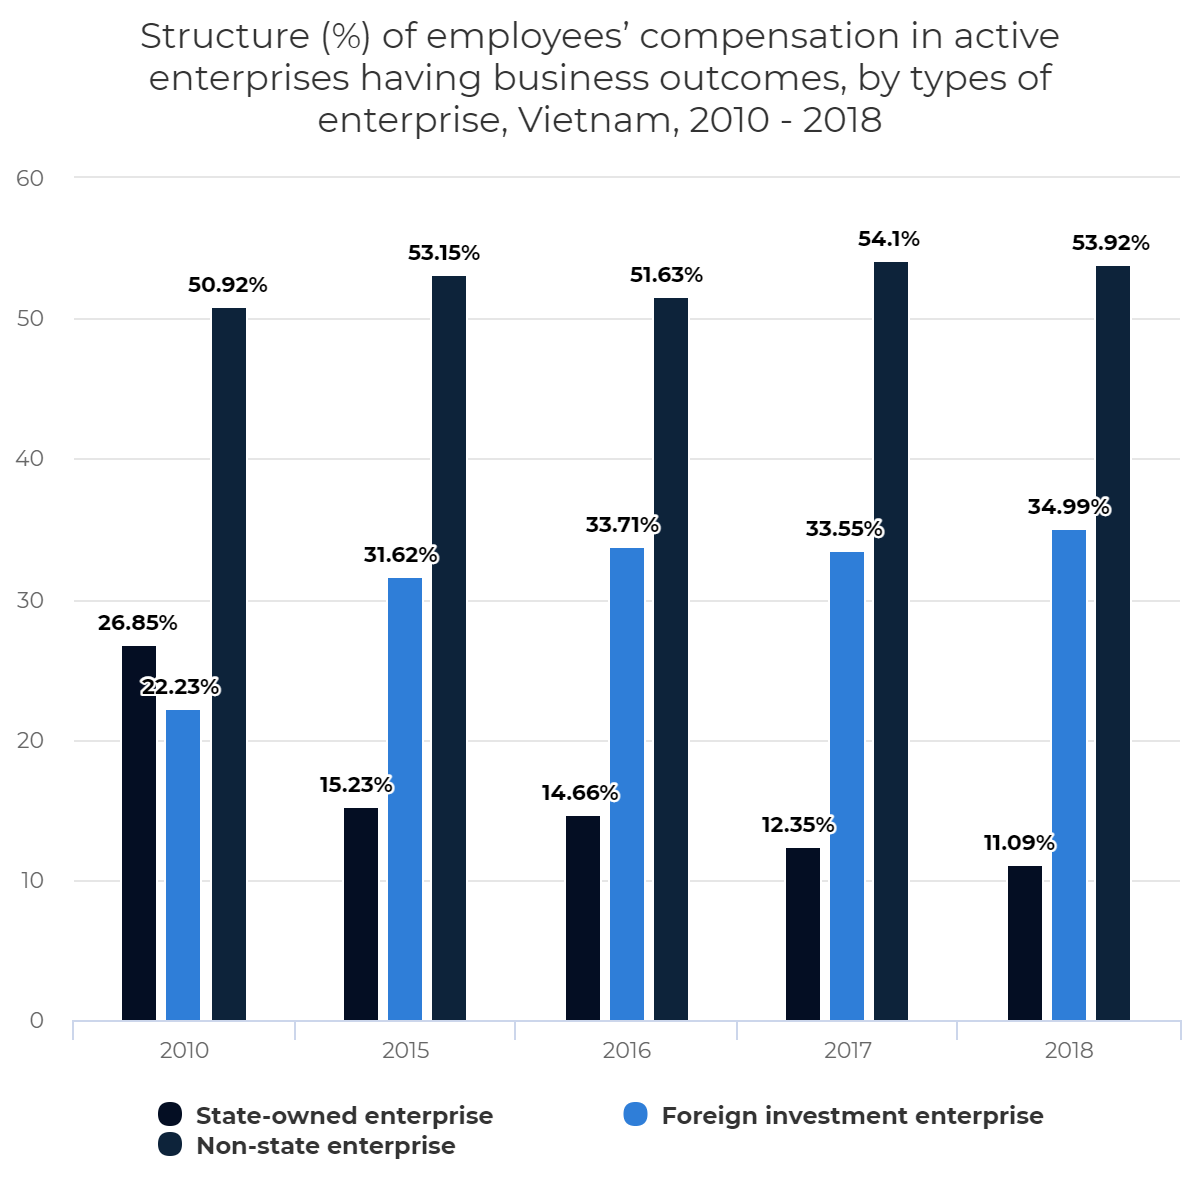 Structure (%) of employees' compensation in active enterprises having business outcomes, by types of enterprise, Vietnam, 2010 – 2018